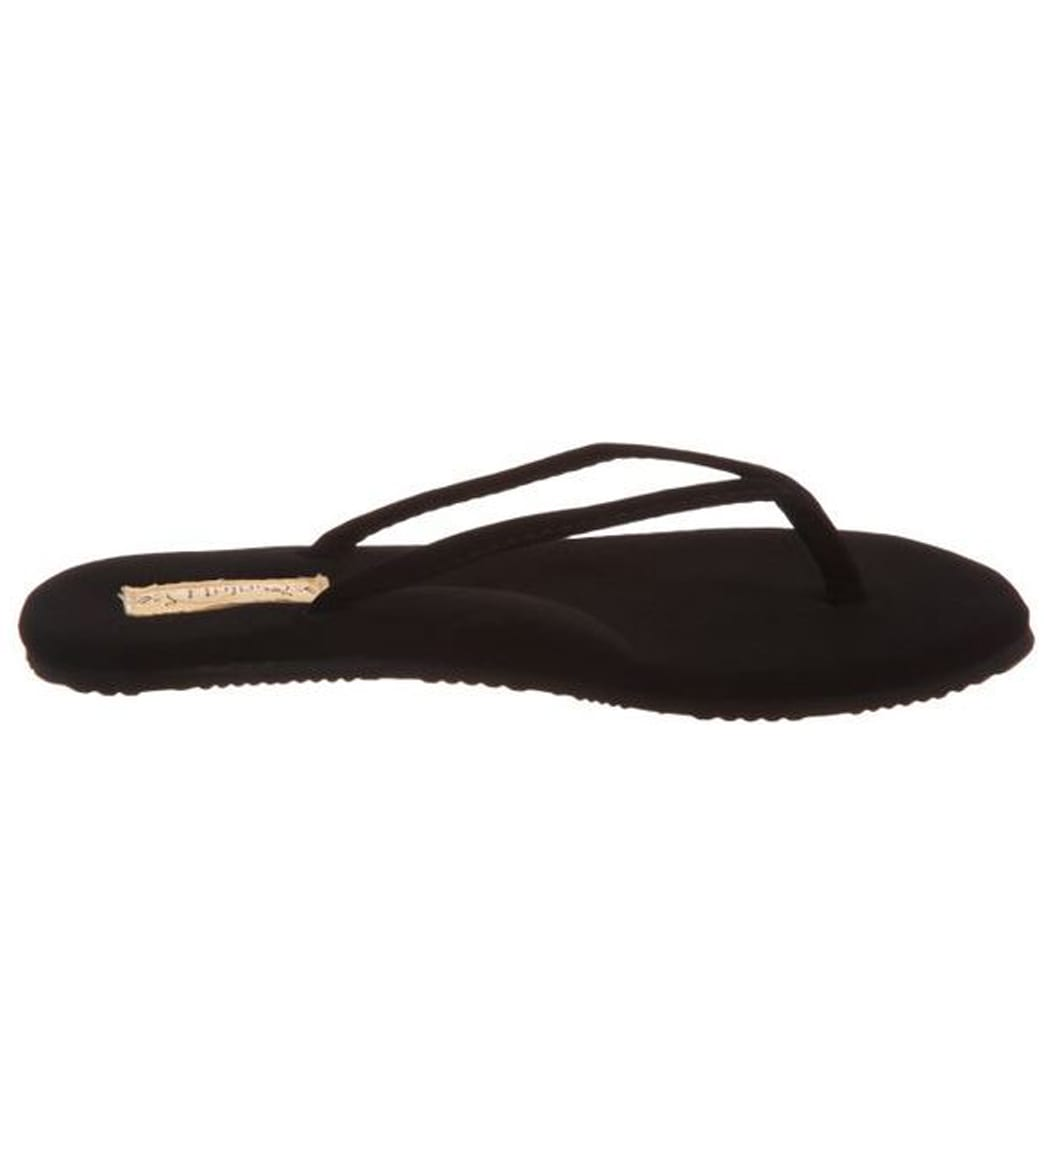 03cdc162368b Flojos Women s Fiesta Flip Flop at SwimOutlet.com